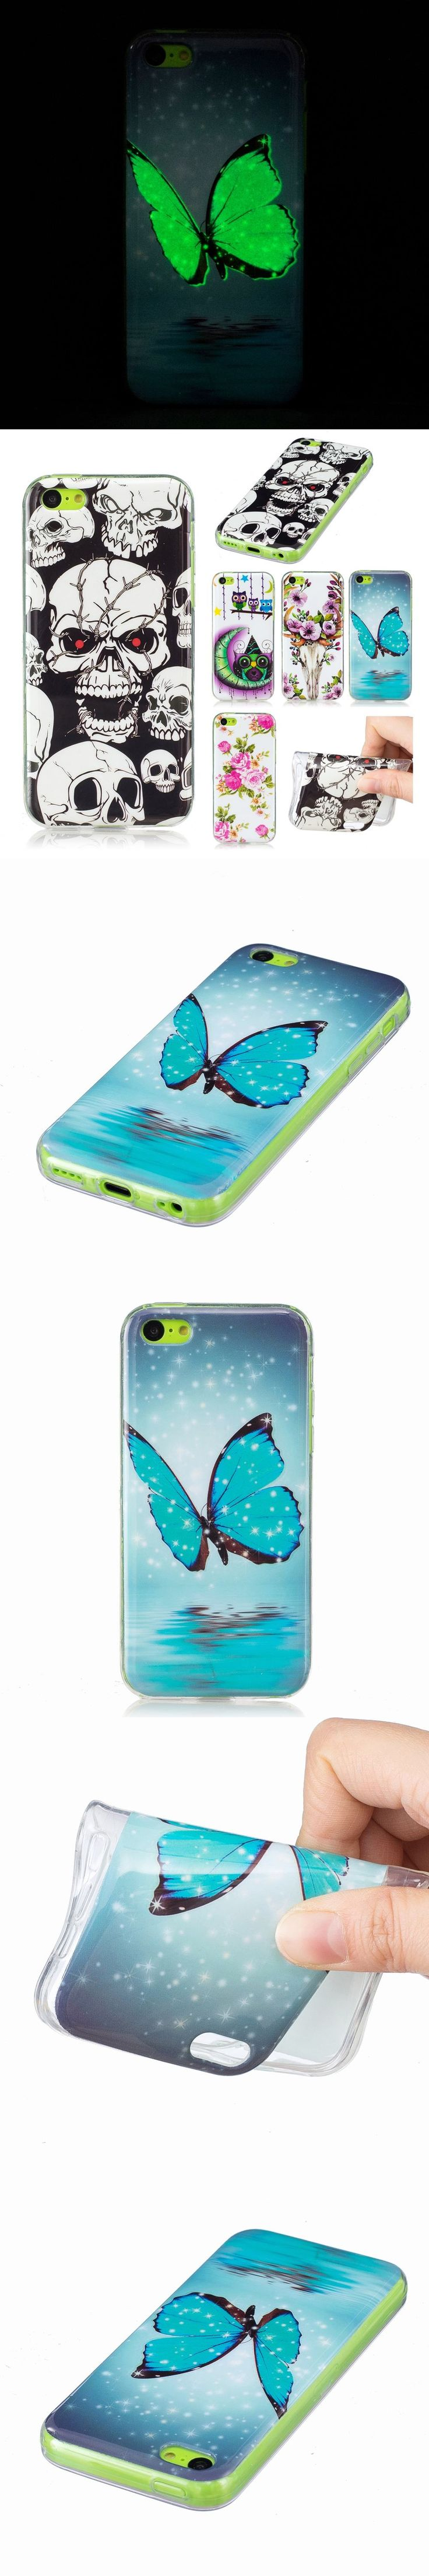 For Coque iphone 5c case silicone transparent TPU cover apple iphone 5c phone cover For iphone 5c soft ultra thin back cases